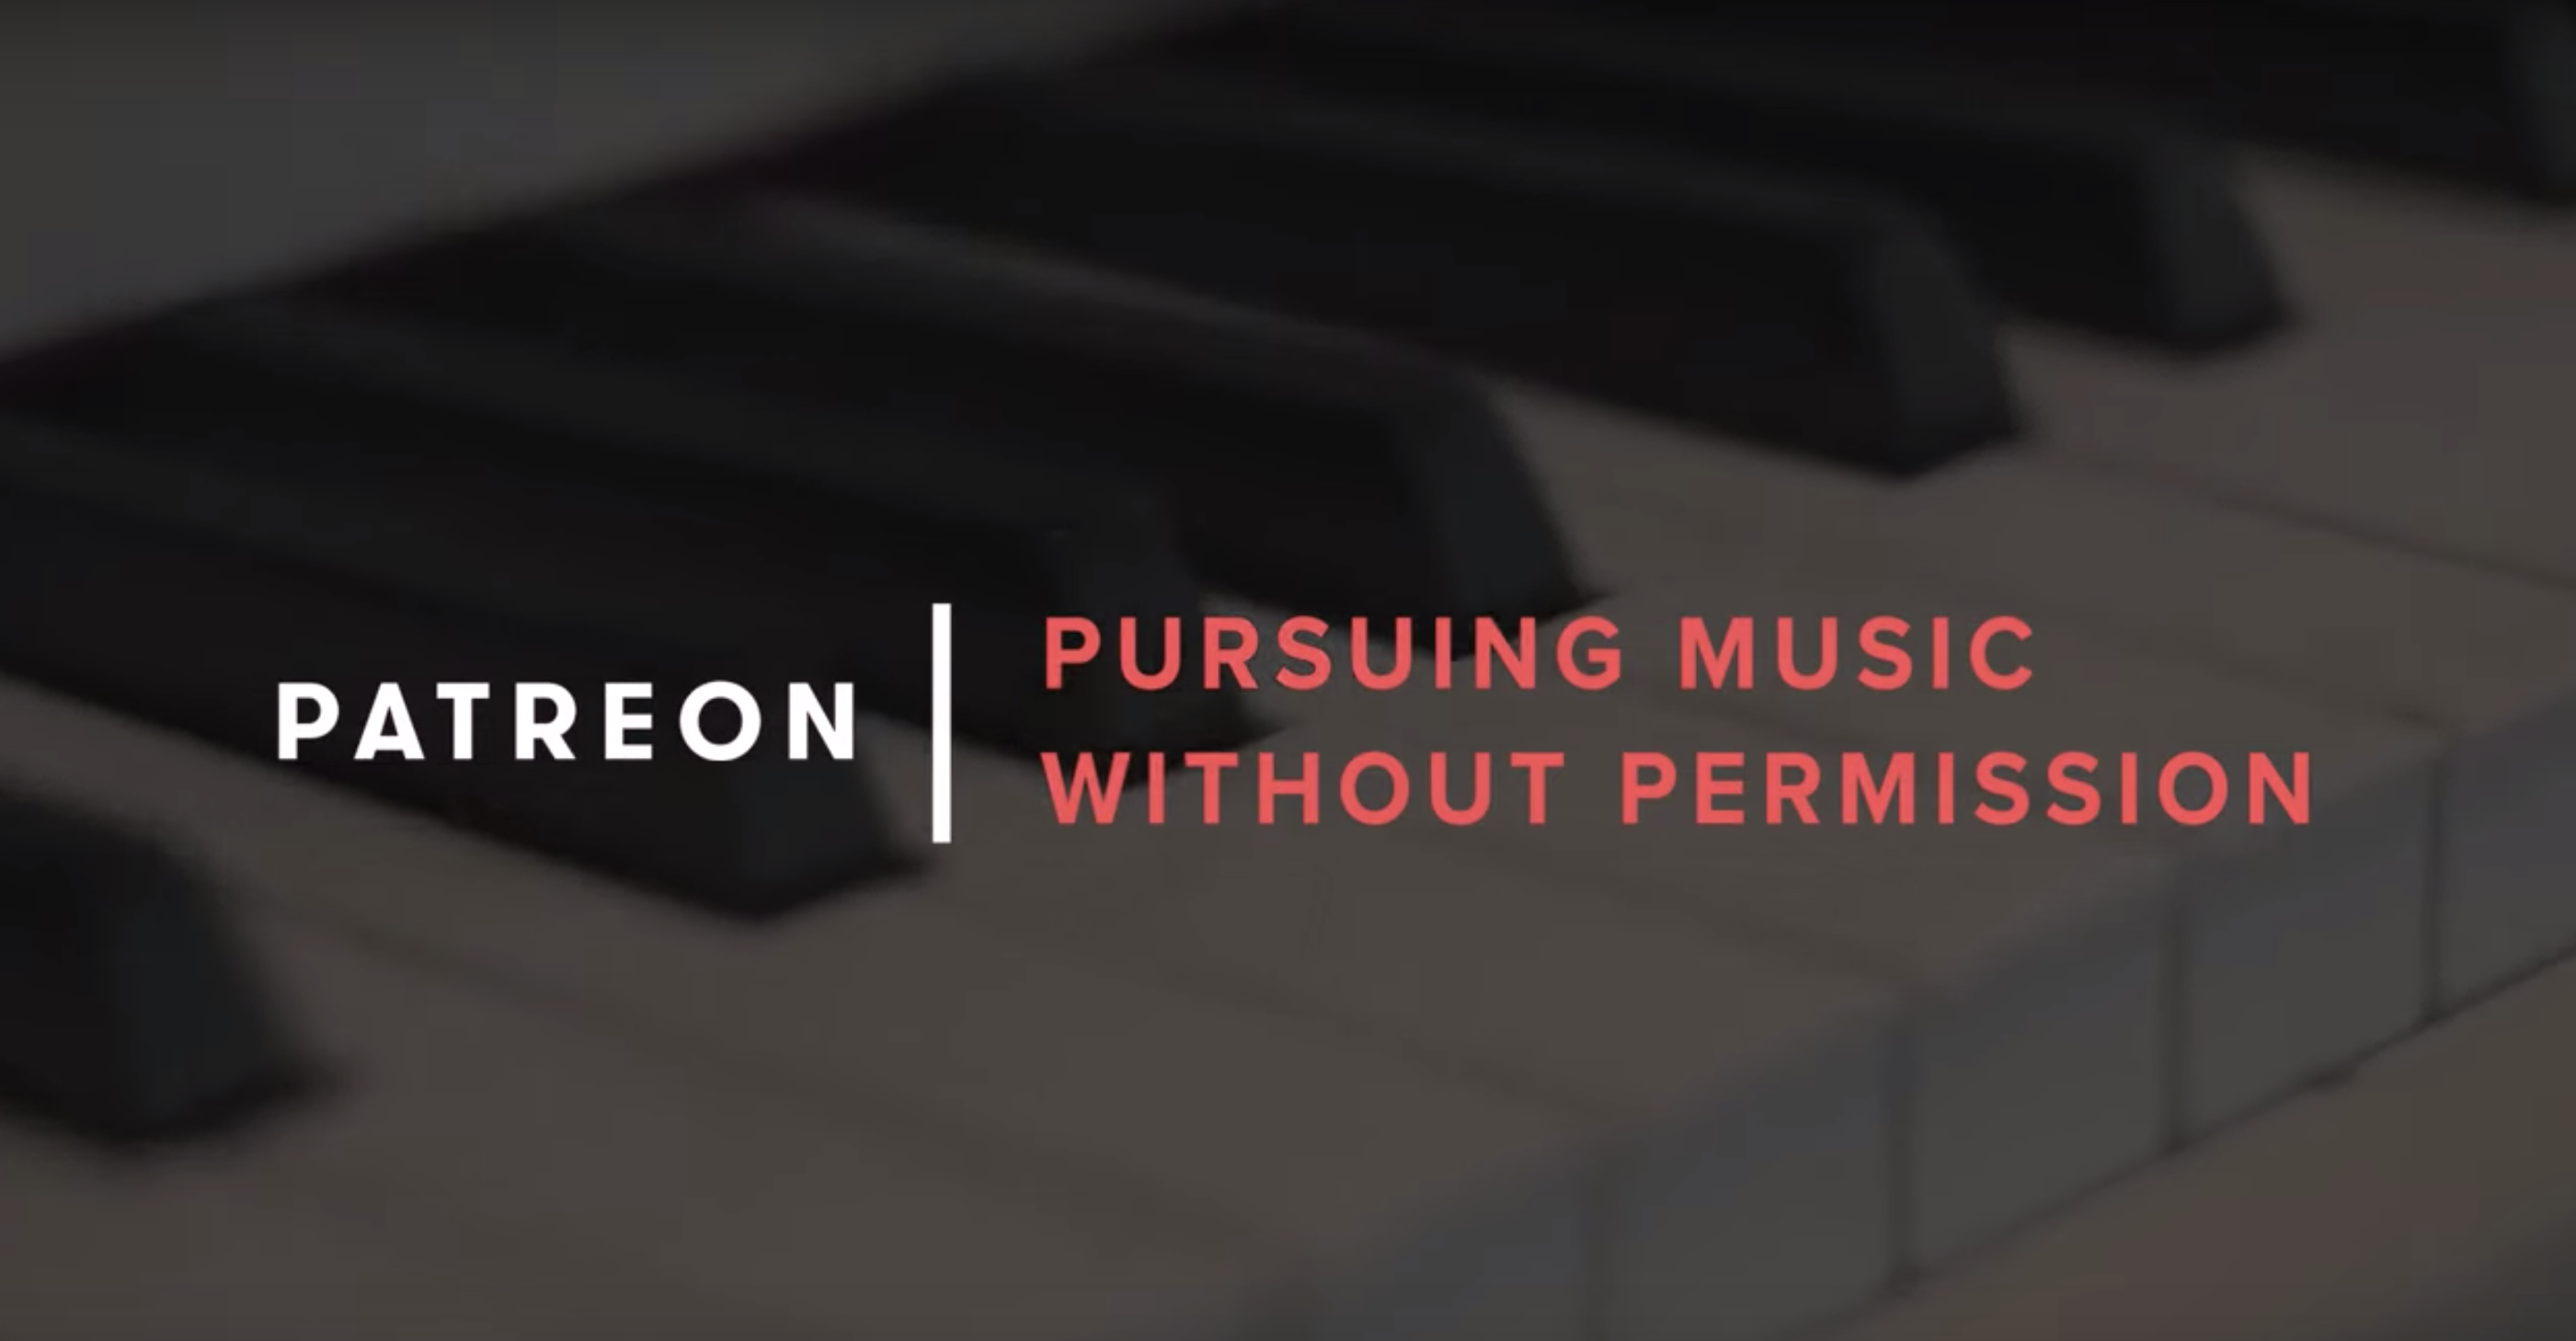 Watch: These Artists Don't Need Permission to Pursue Music